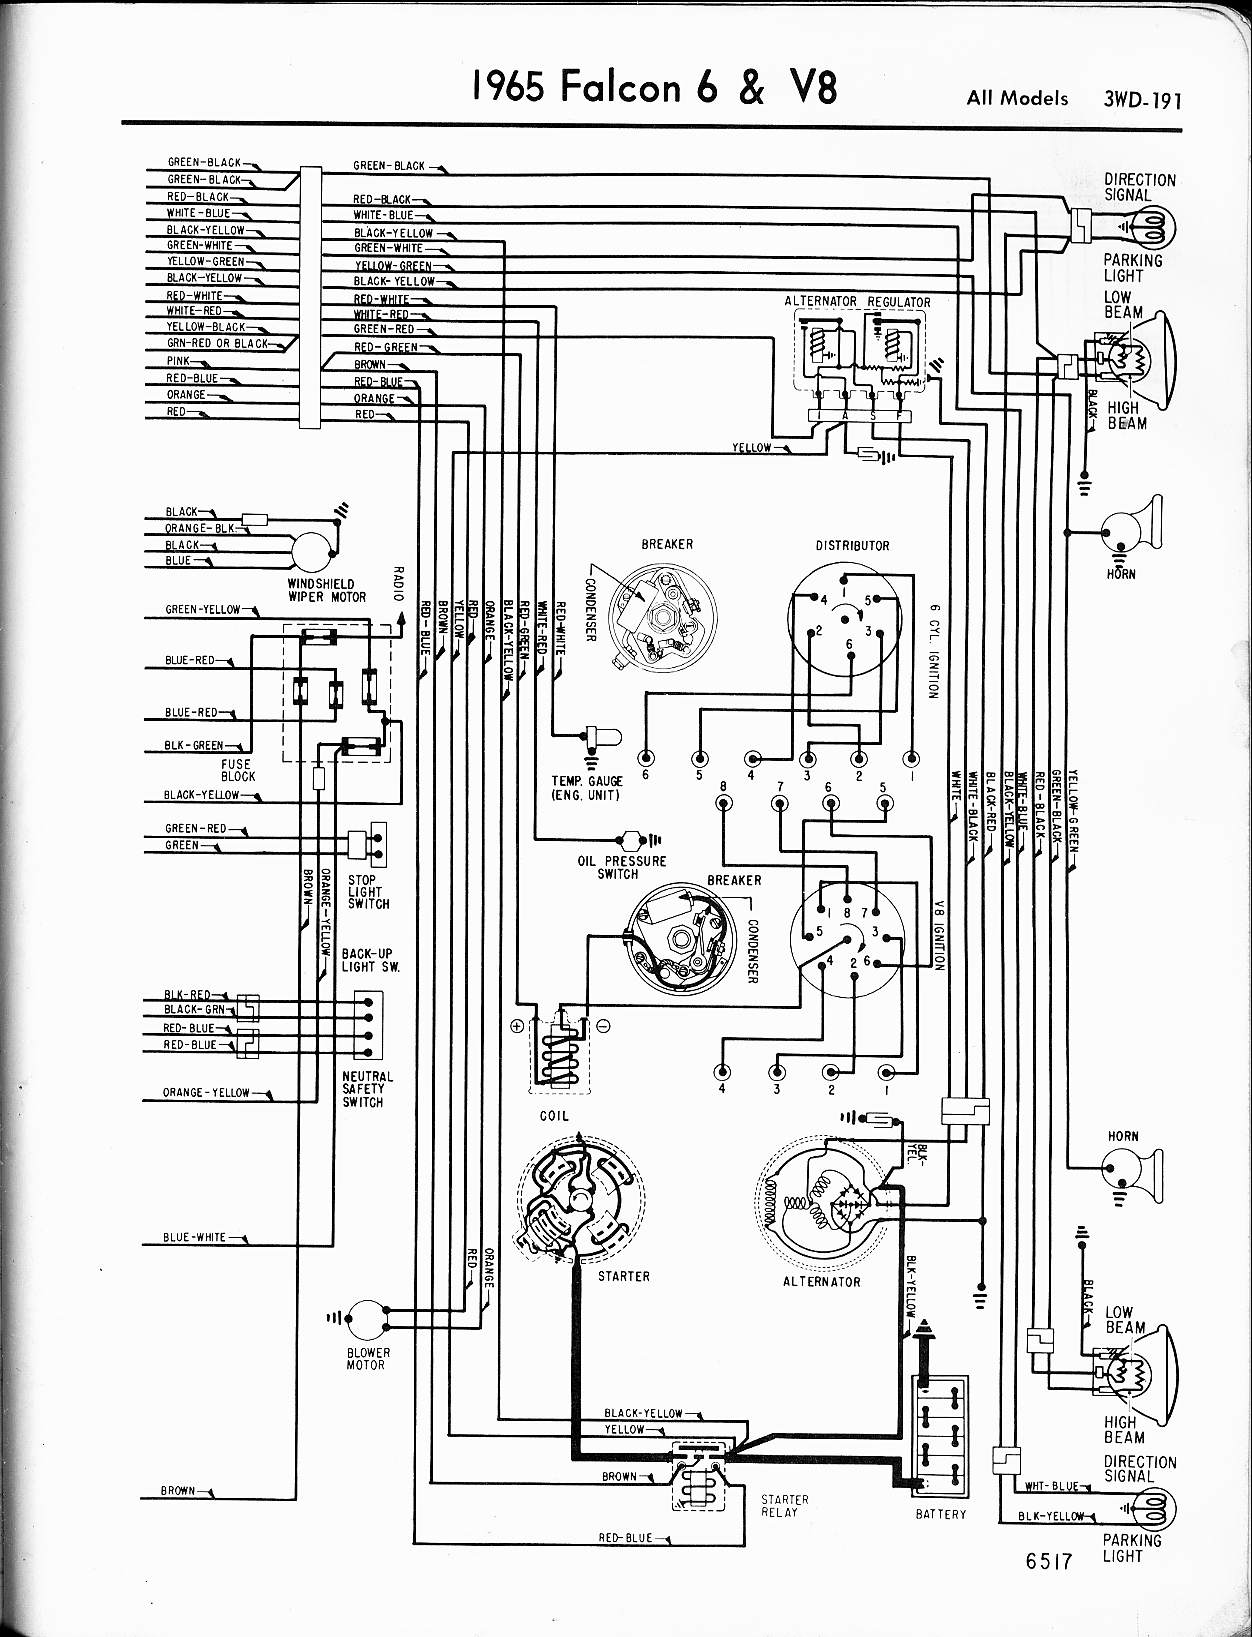 MWire5765 191 engine wire diagram for 65 falcon 65 falcon hot rod \u2022 wiring 1965 ford mustang wiring diagrams at gsmx.co